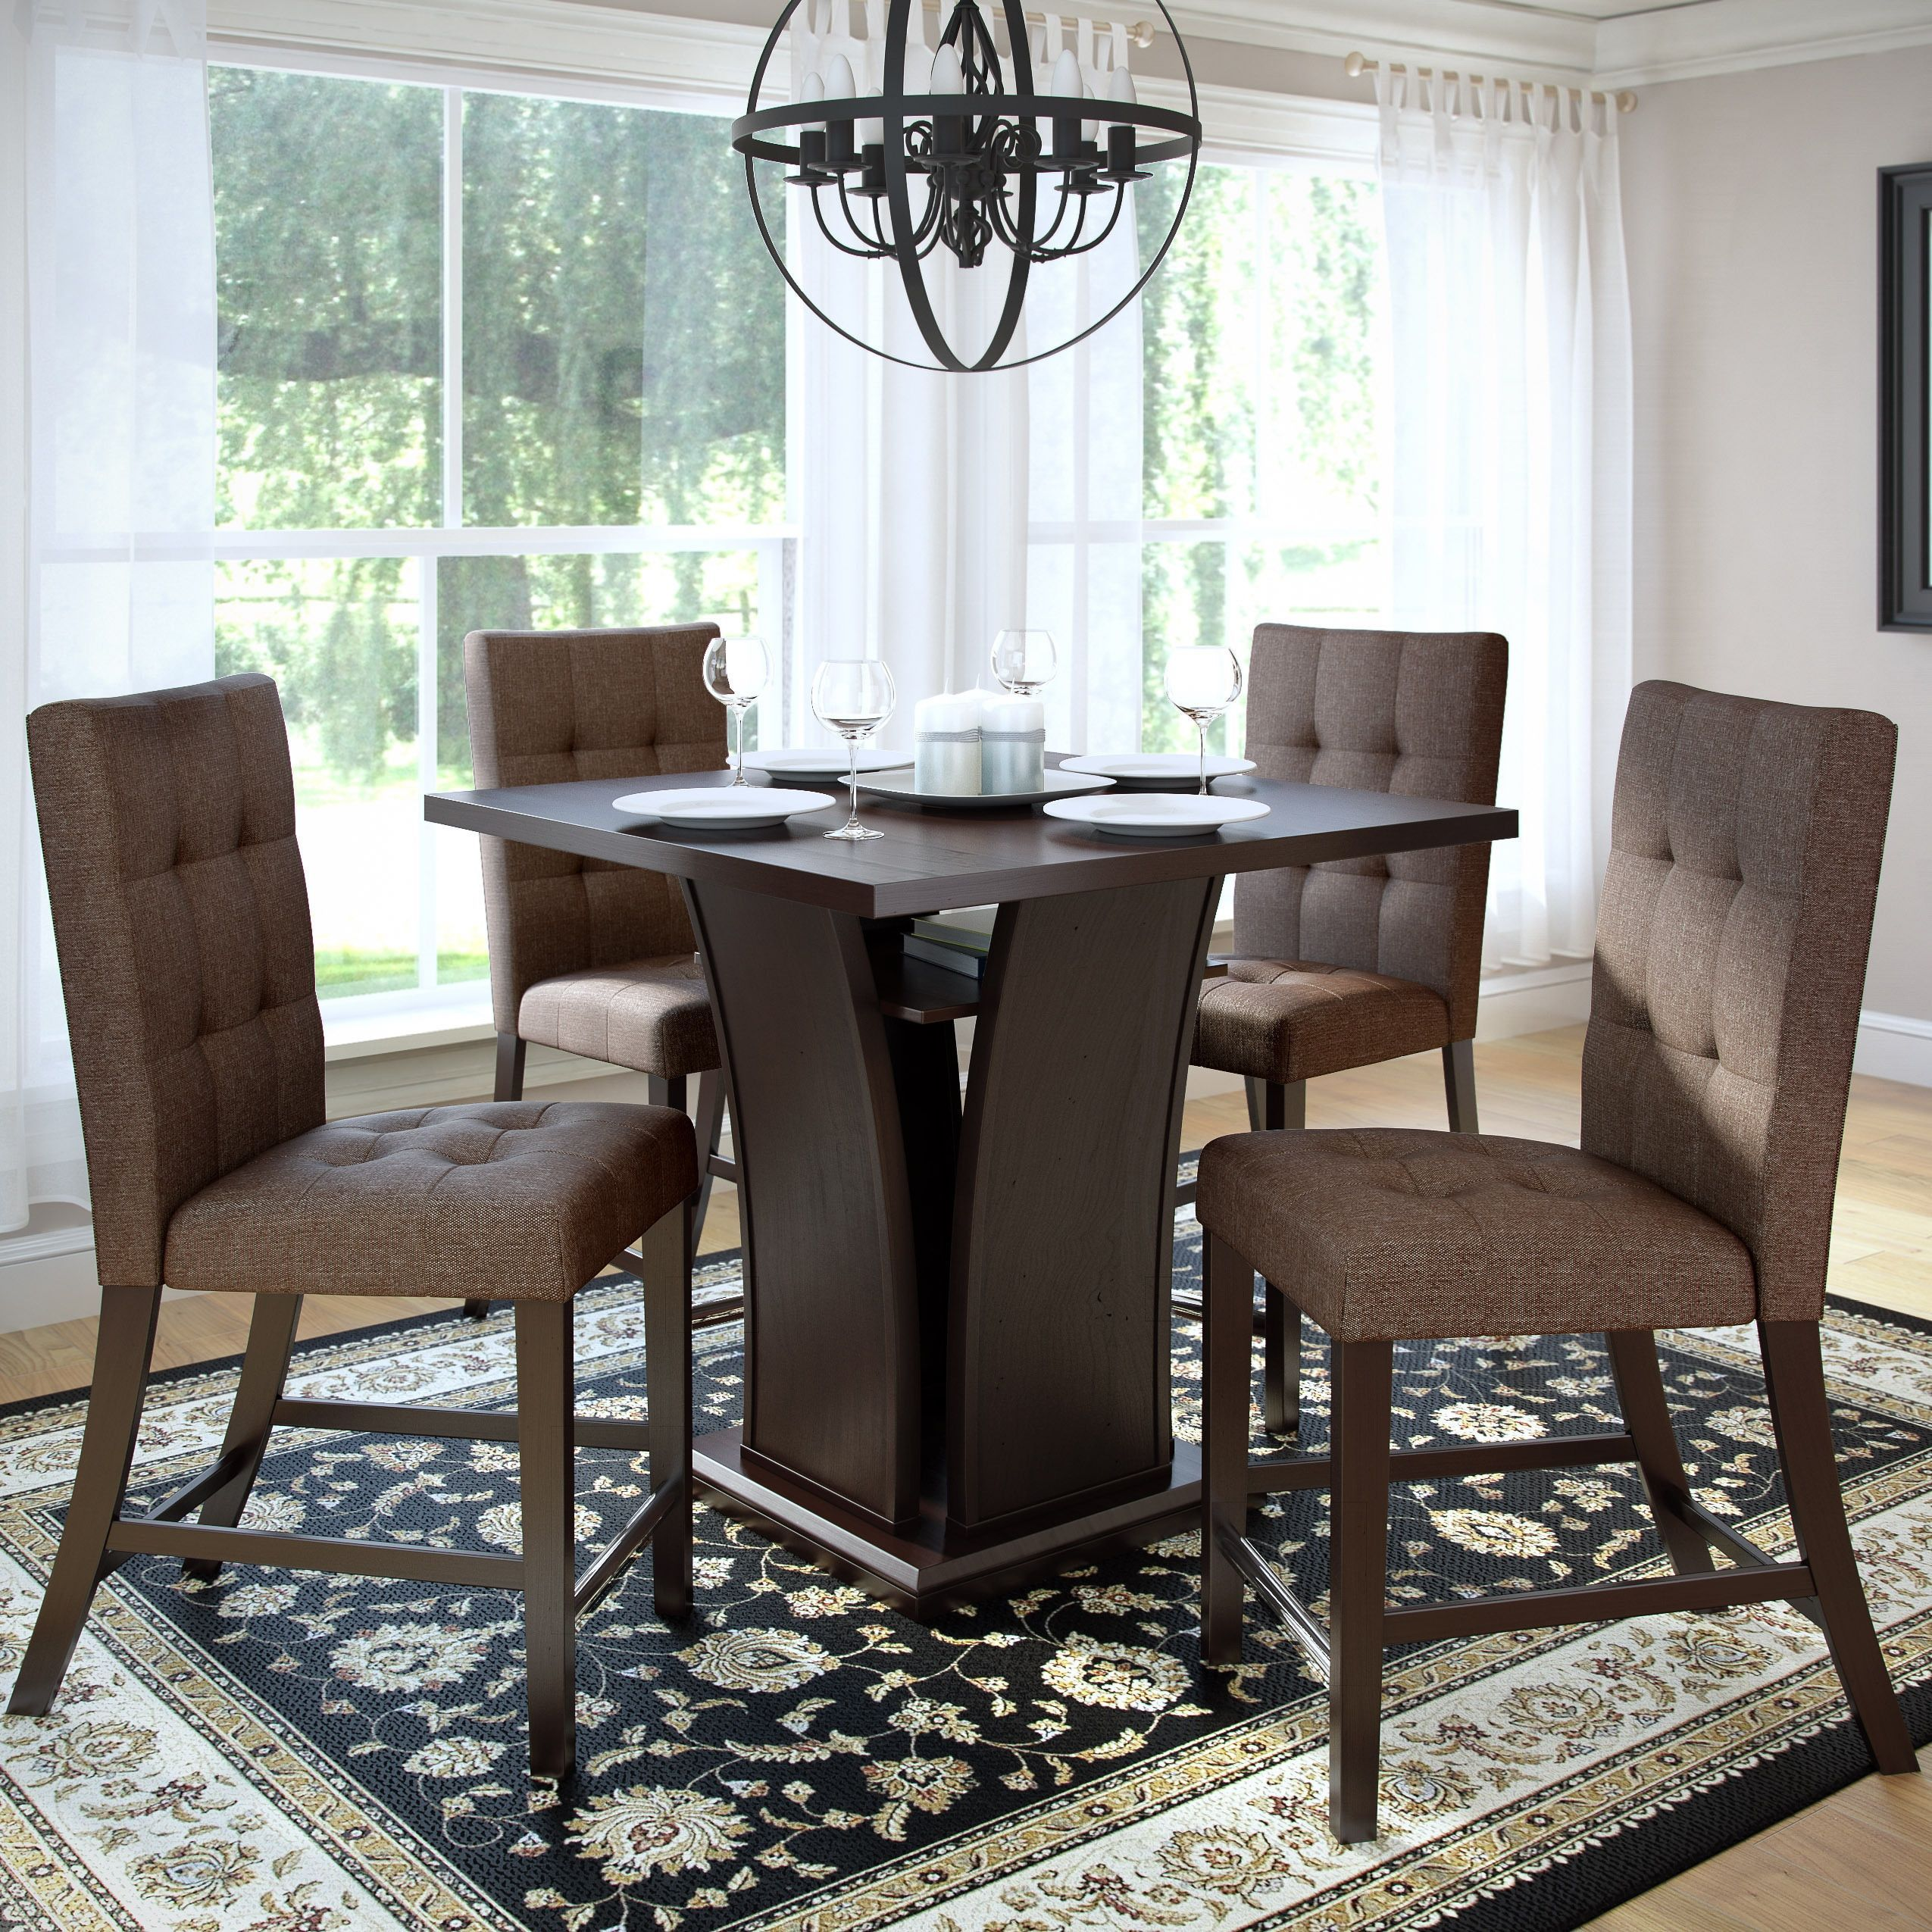 CorLiving Bistro 5pc Counter Height Dining Set Cappuccino and